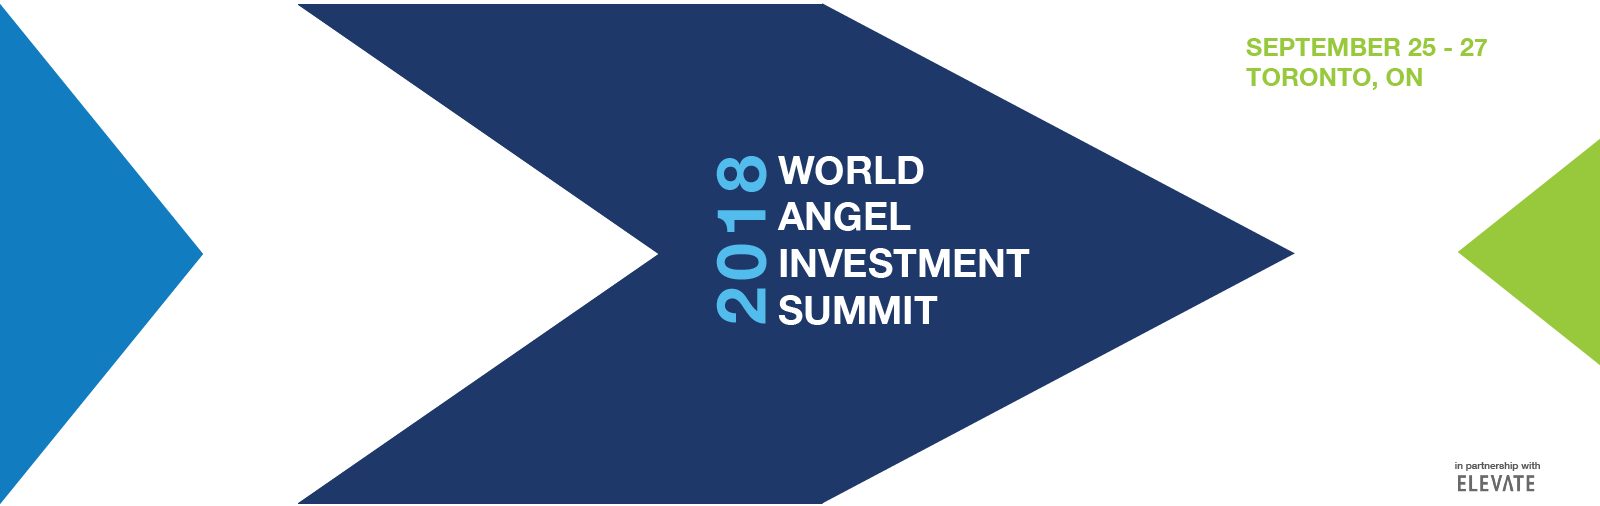 World Summit Image